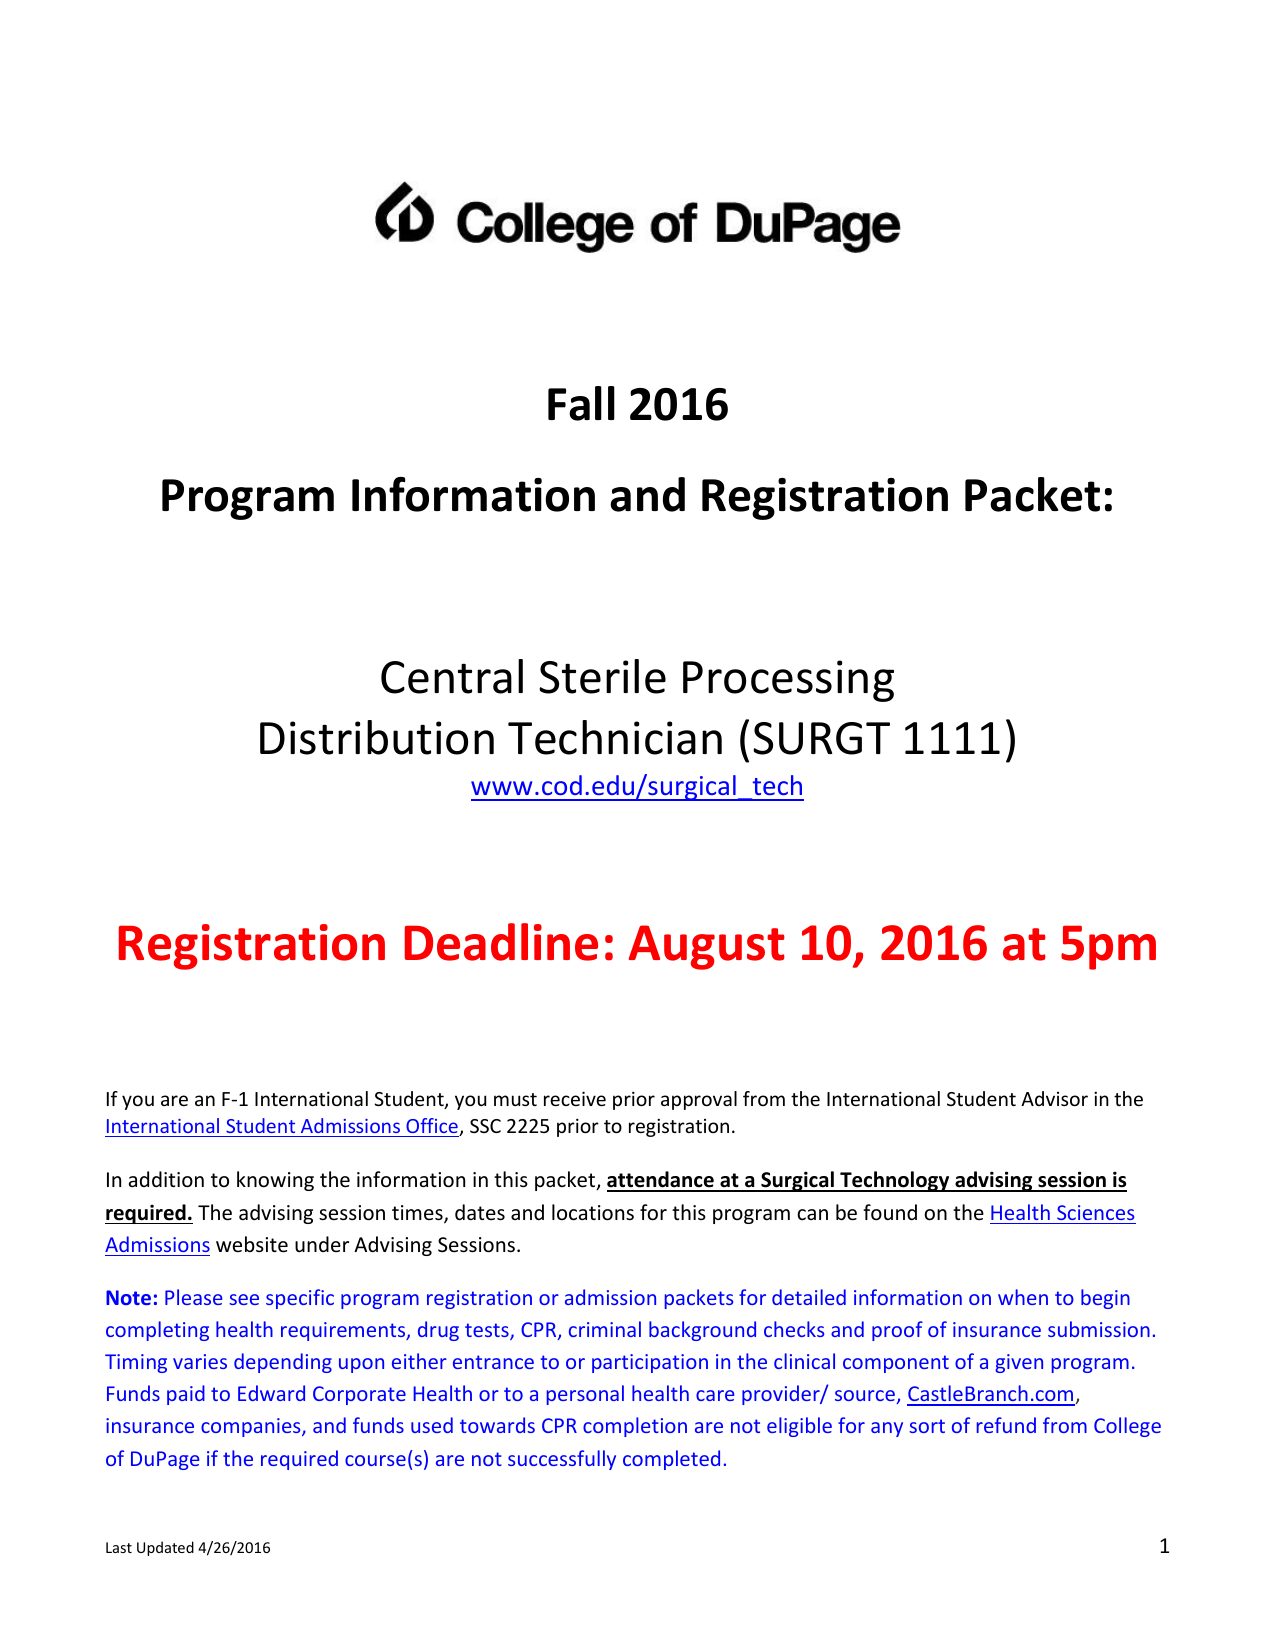 Registration Deadline August 10 2016 At 5pm Central Sterile Processing